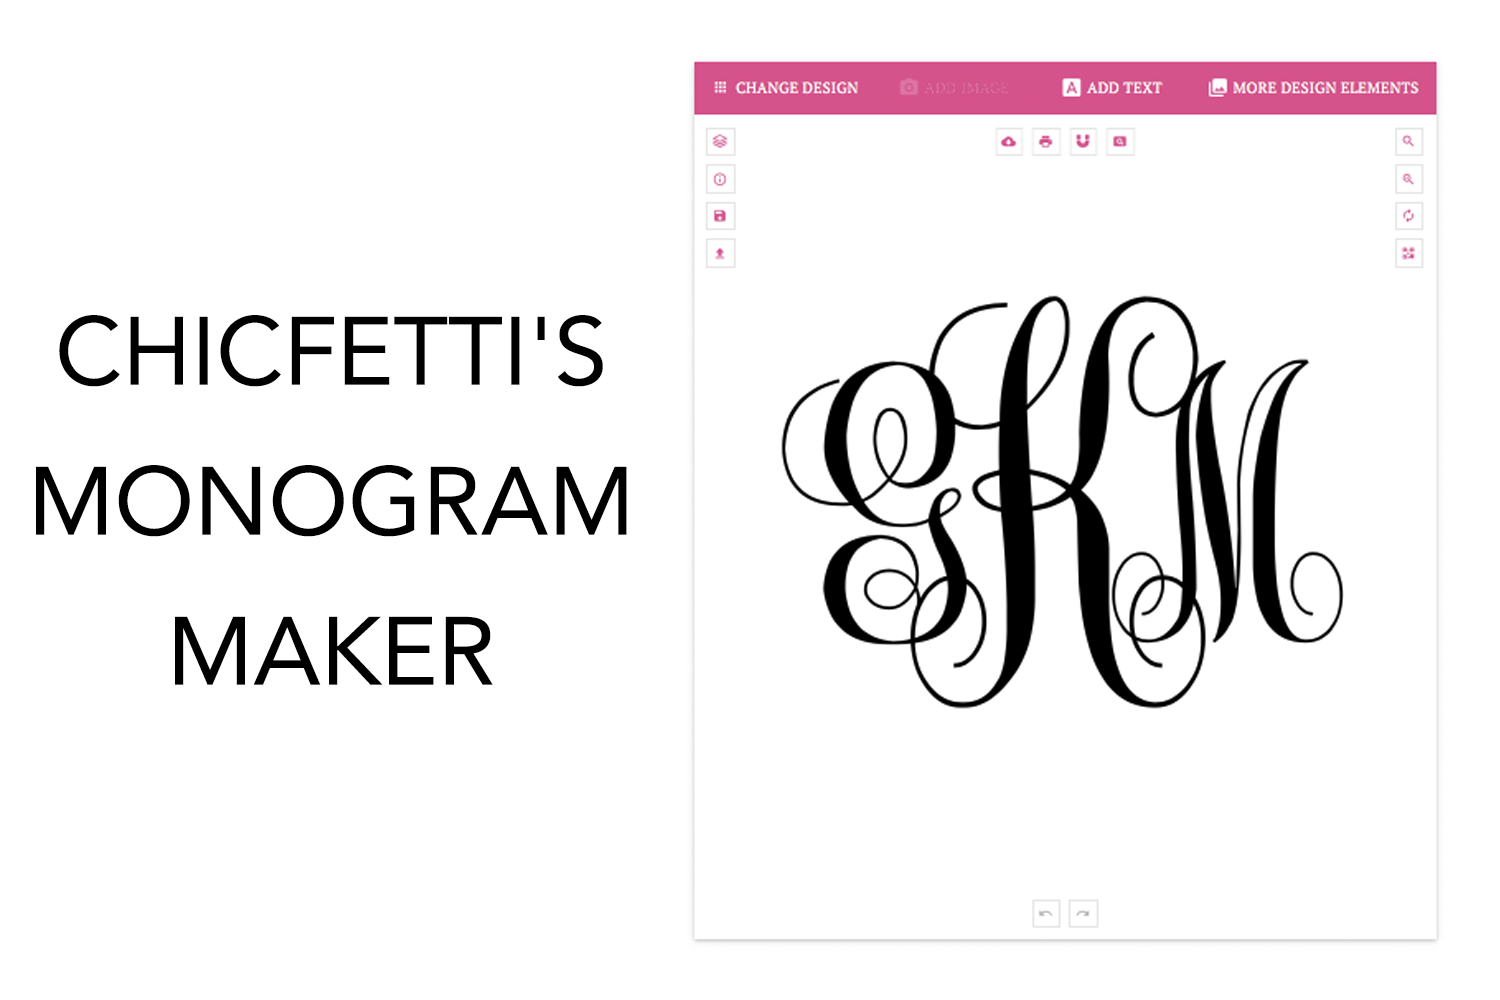 image about Printable Monogram Maker titled Monogram Producer - Deliver your personalized monograms employing our absolutely free